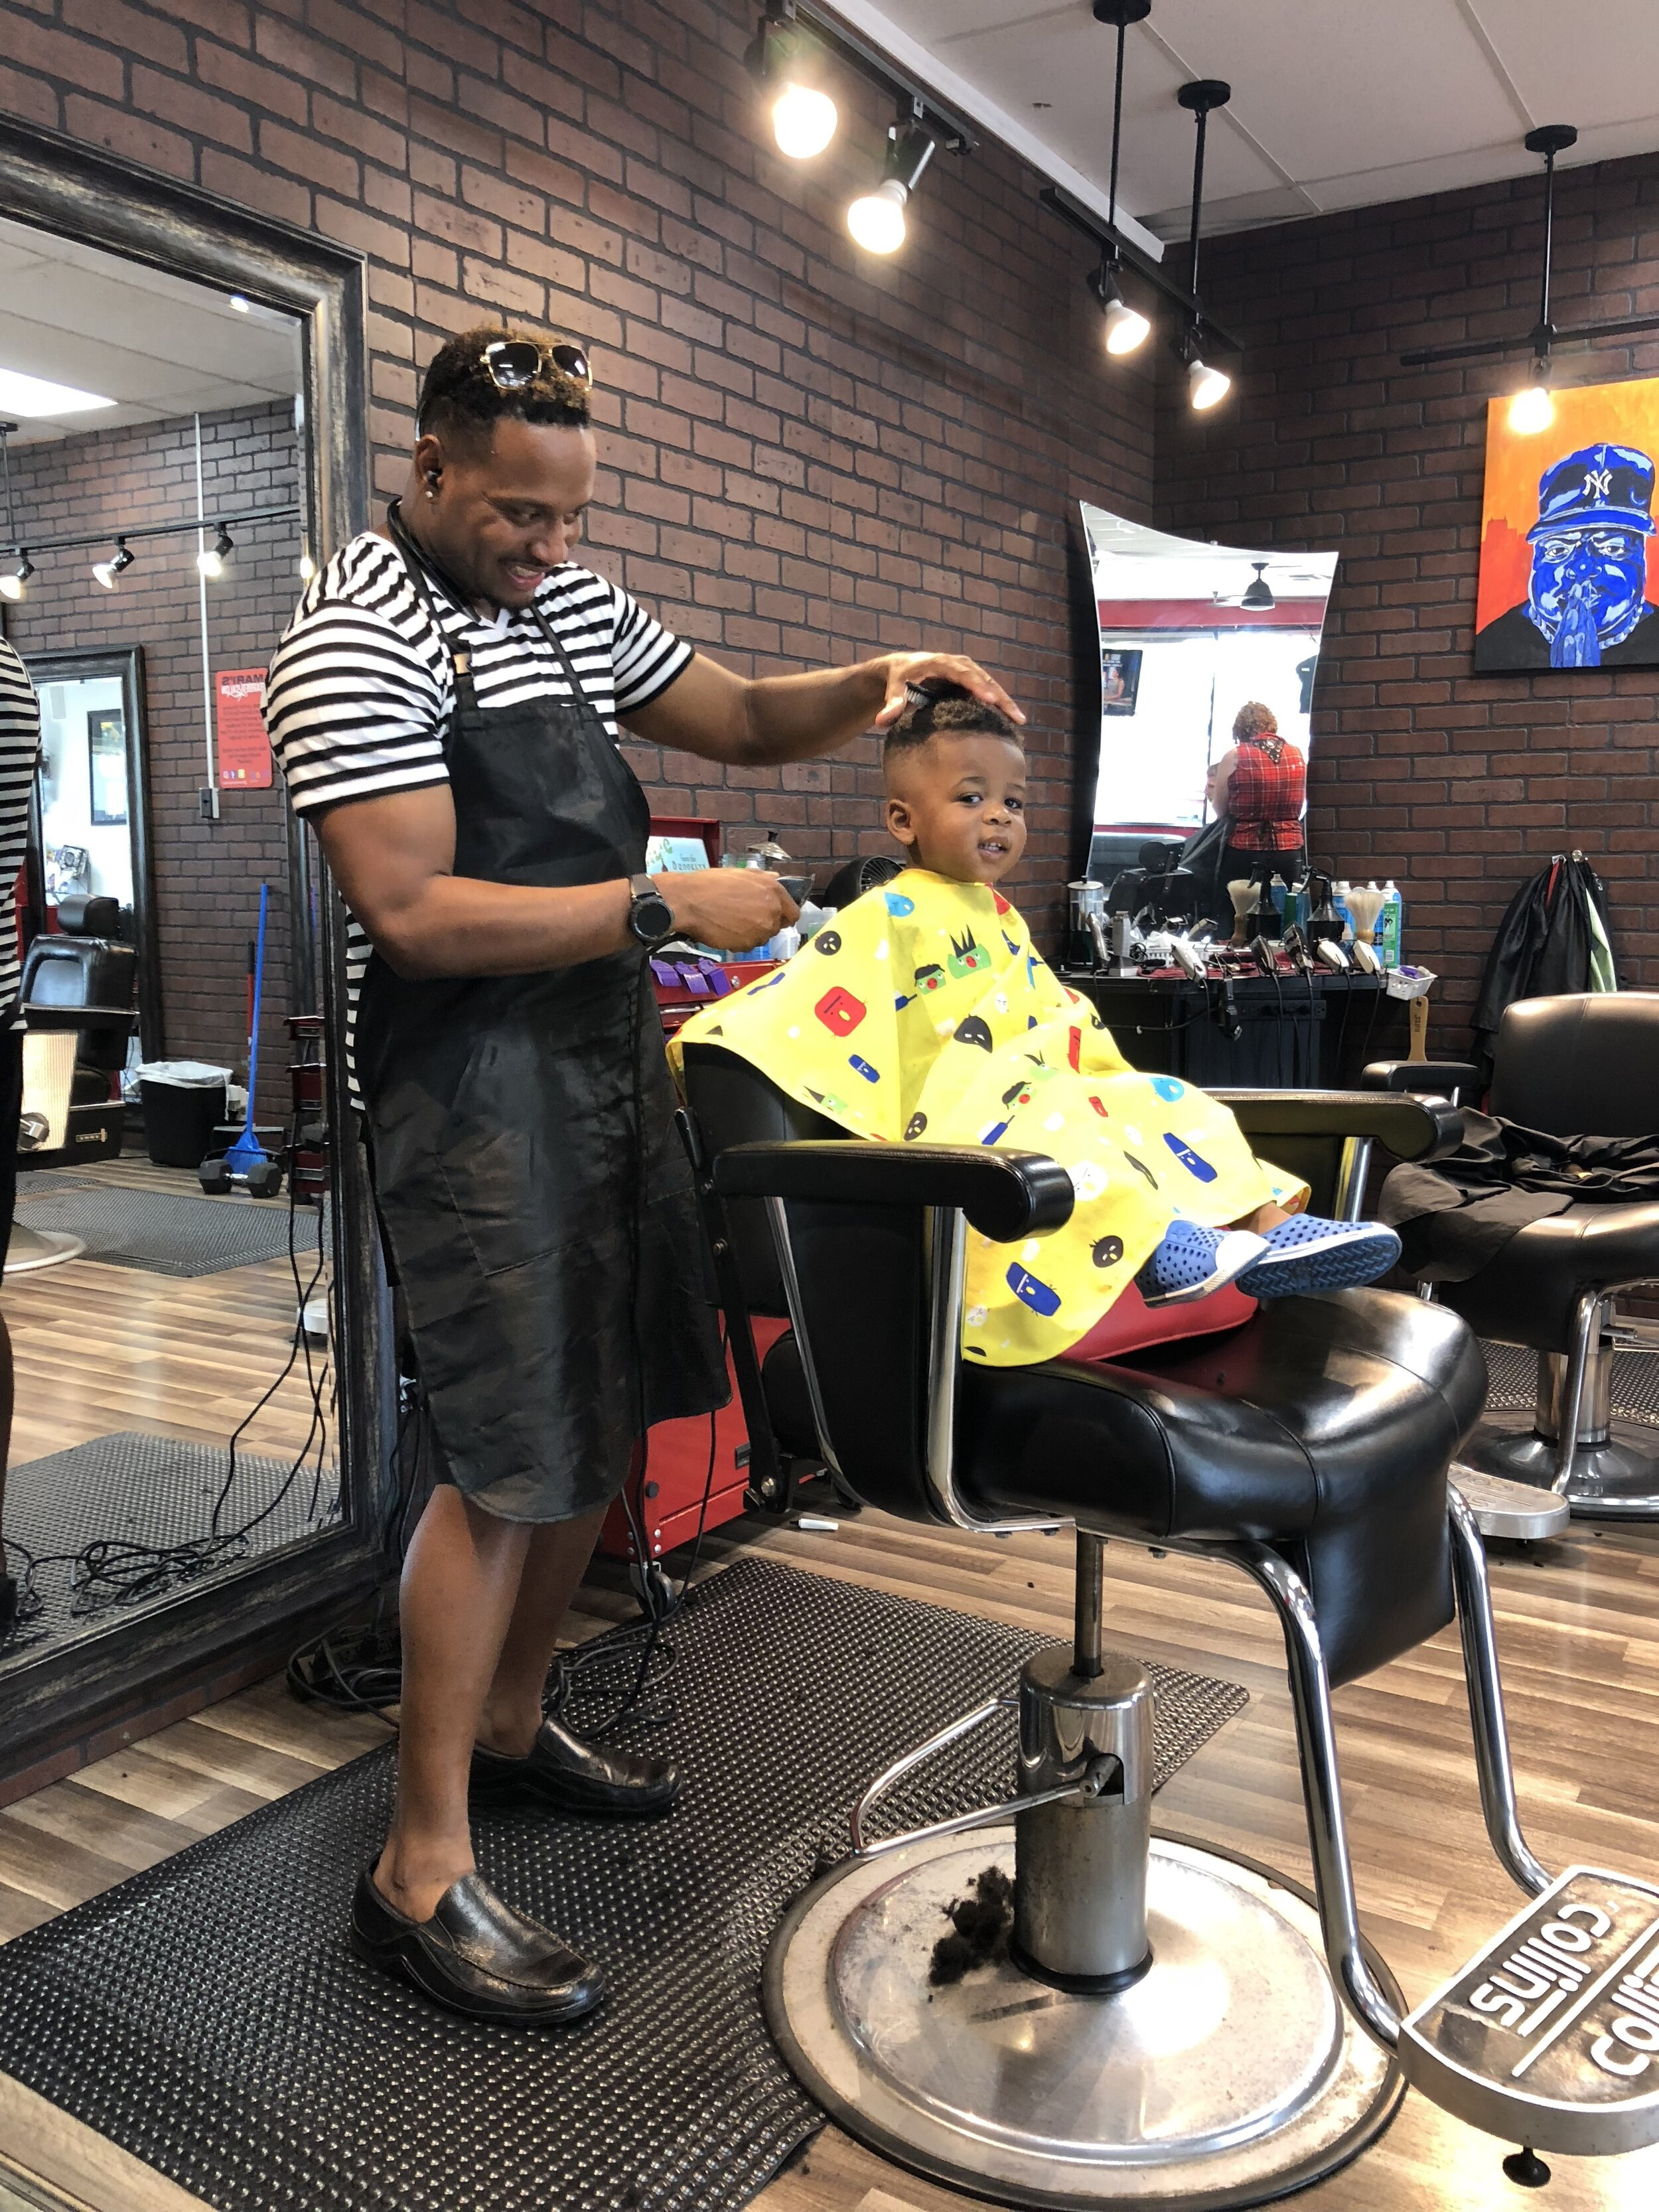 Maxwell has had the same barber since his first hair cut at 13 months old